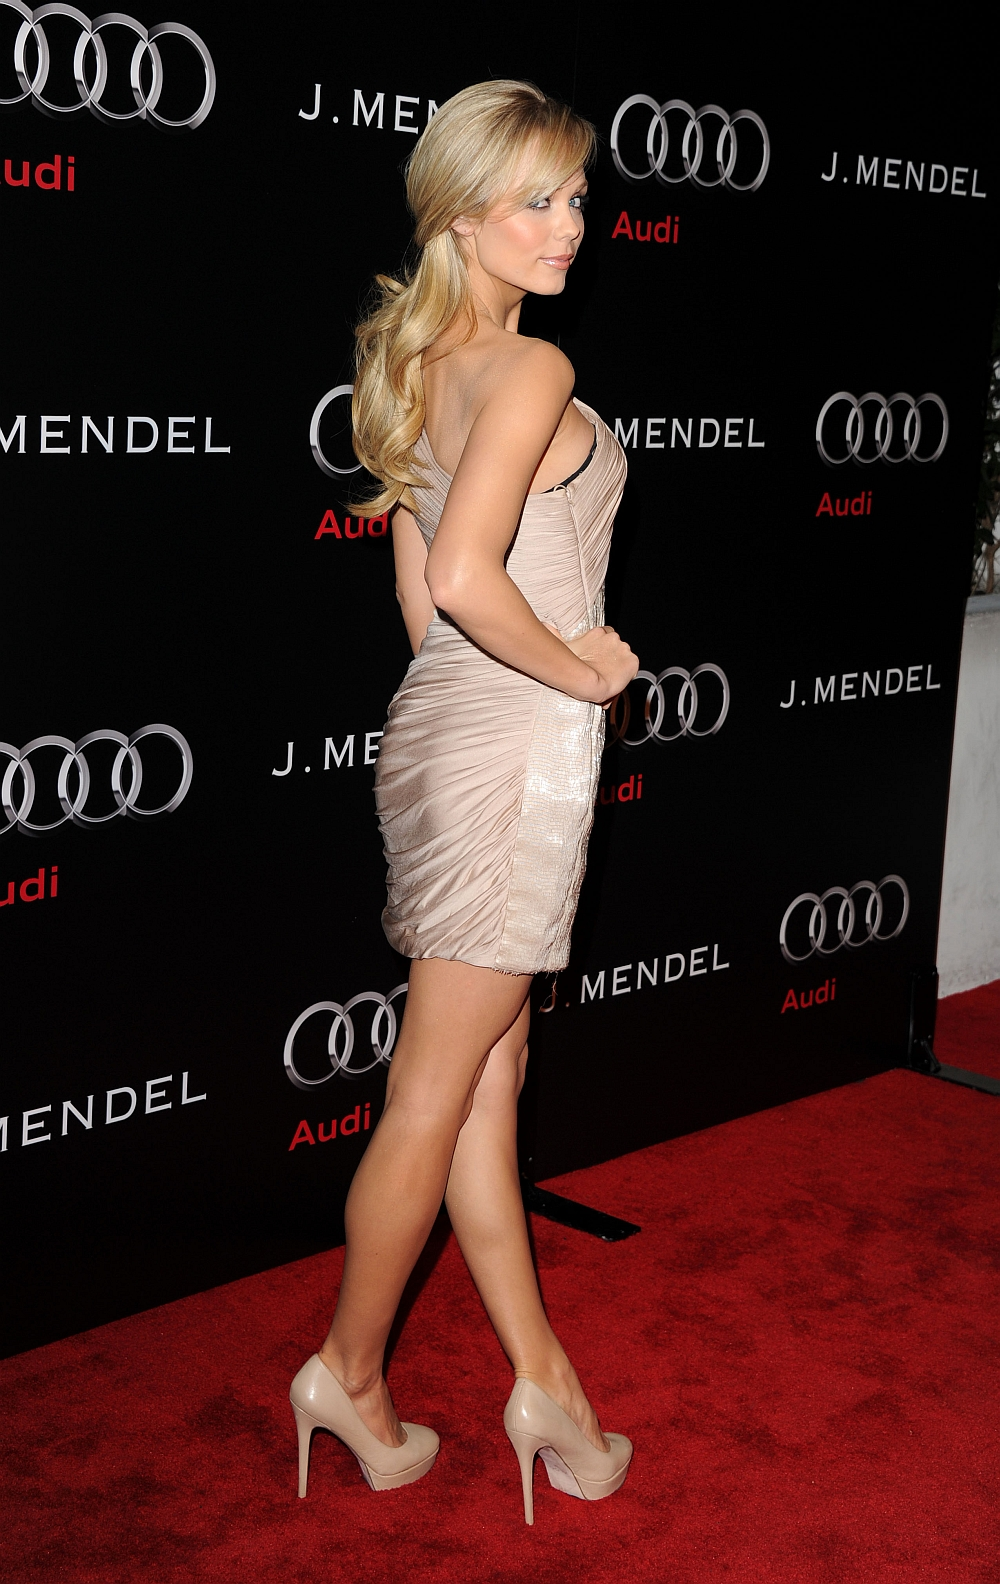 Celebrities in High Heel Pumps 7 [HQ] - SuperiorPics ...